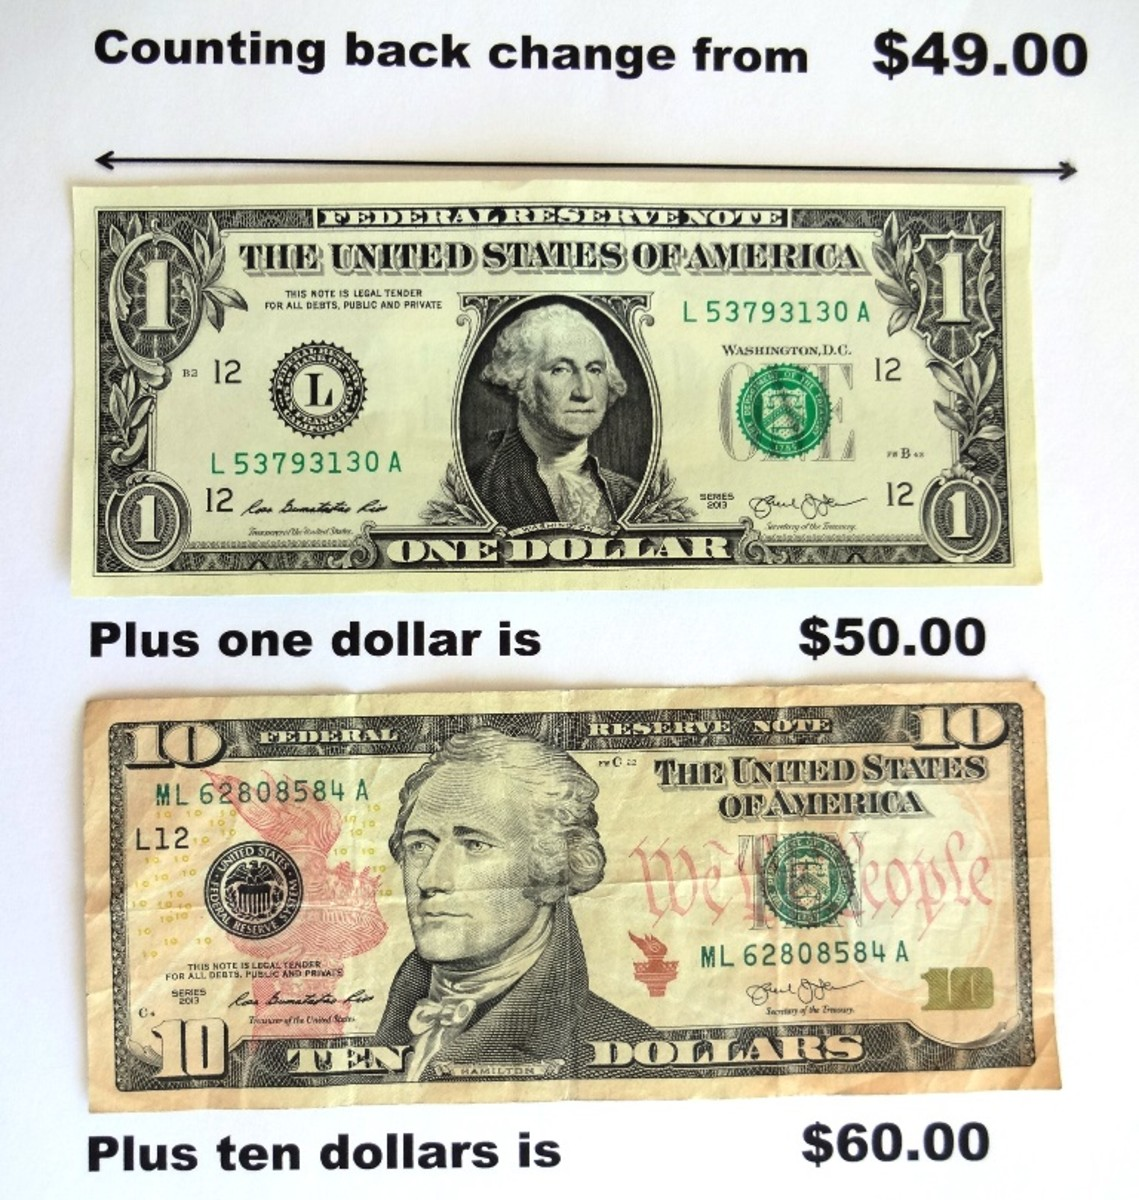 And one dollar makes fifty. Add ten more dollars and you have sixty.